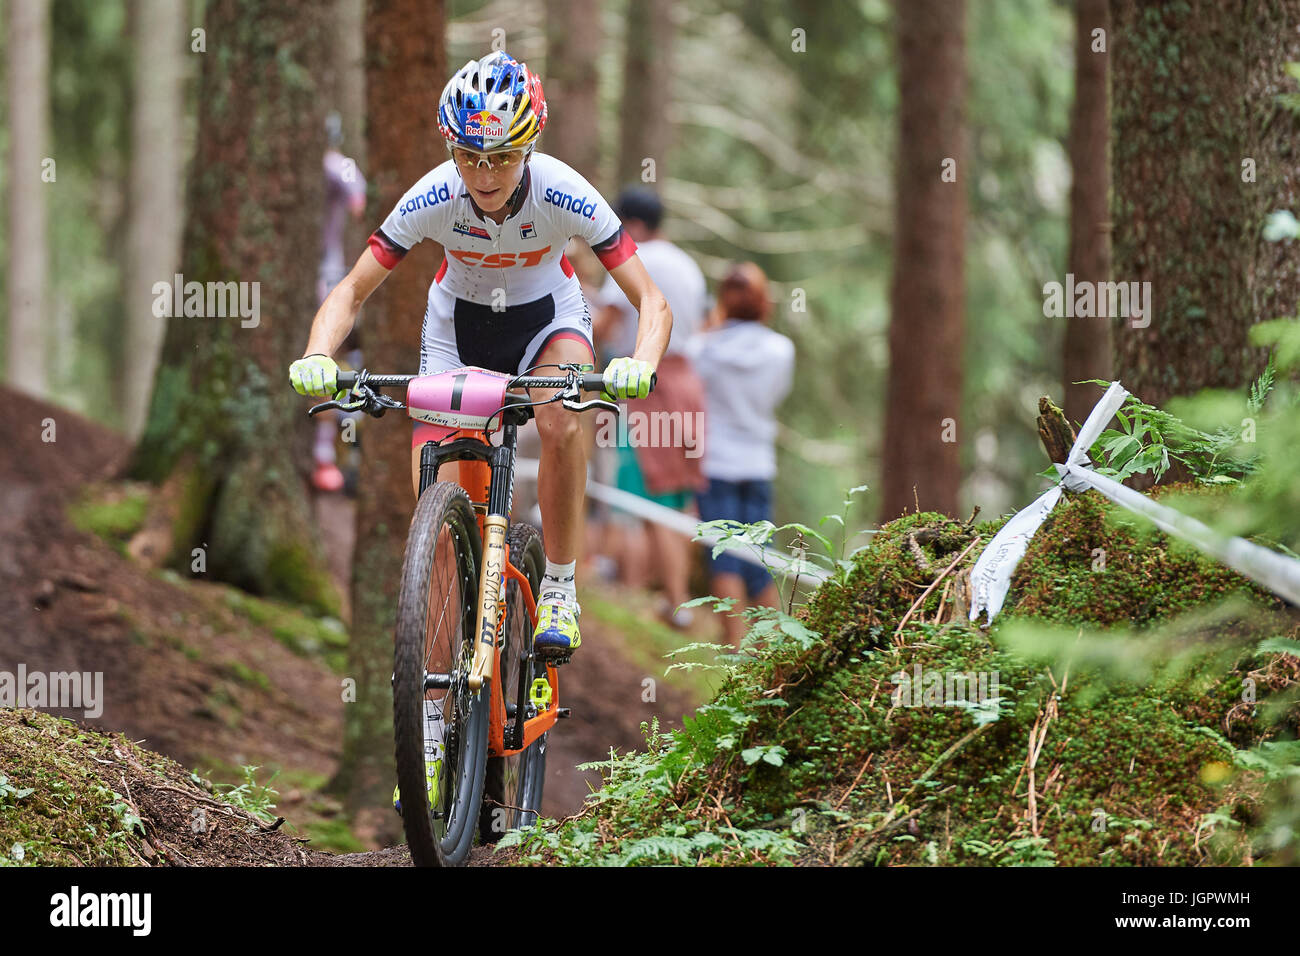 Lenzerheide, Switzerland. 9th July, 2017. Yana Belomoina from CST SANDD AMERICAN EAGLE MTB RACING TEAM during the - Stock Image